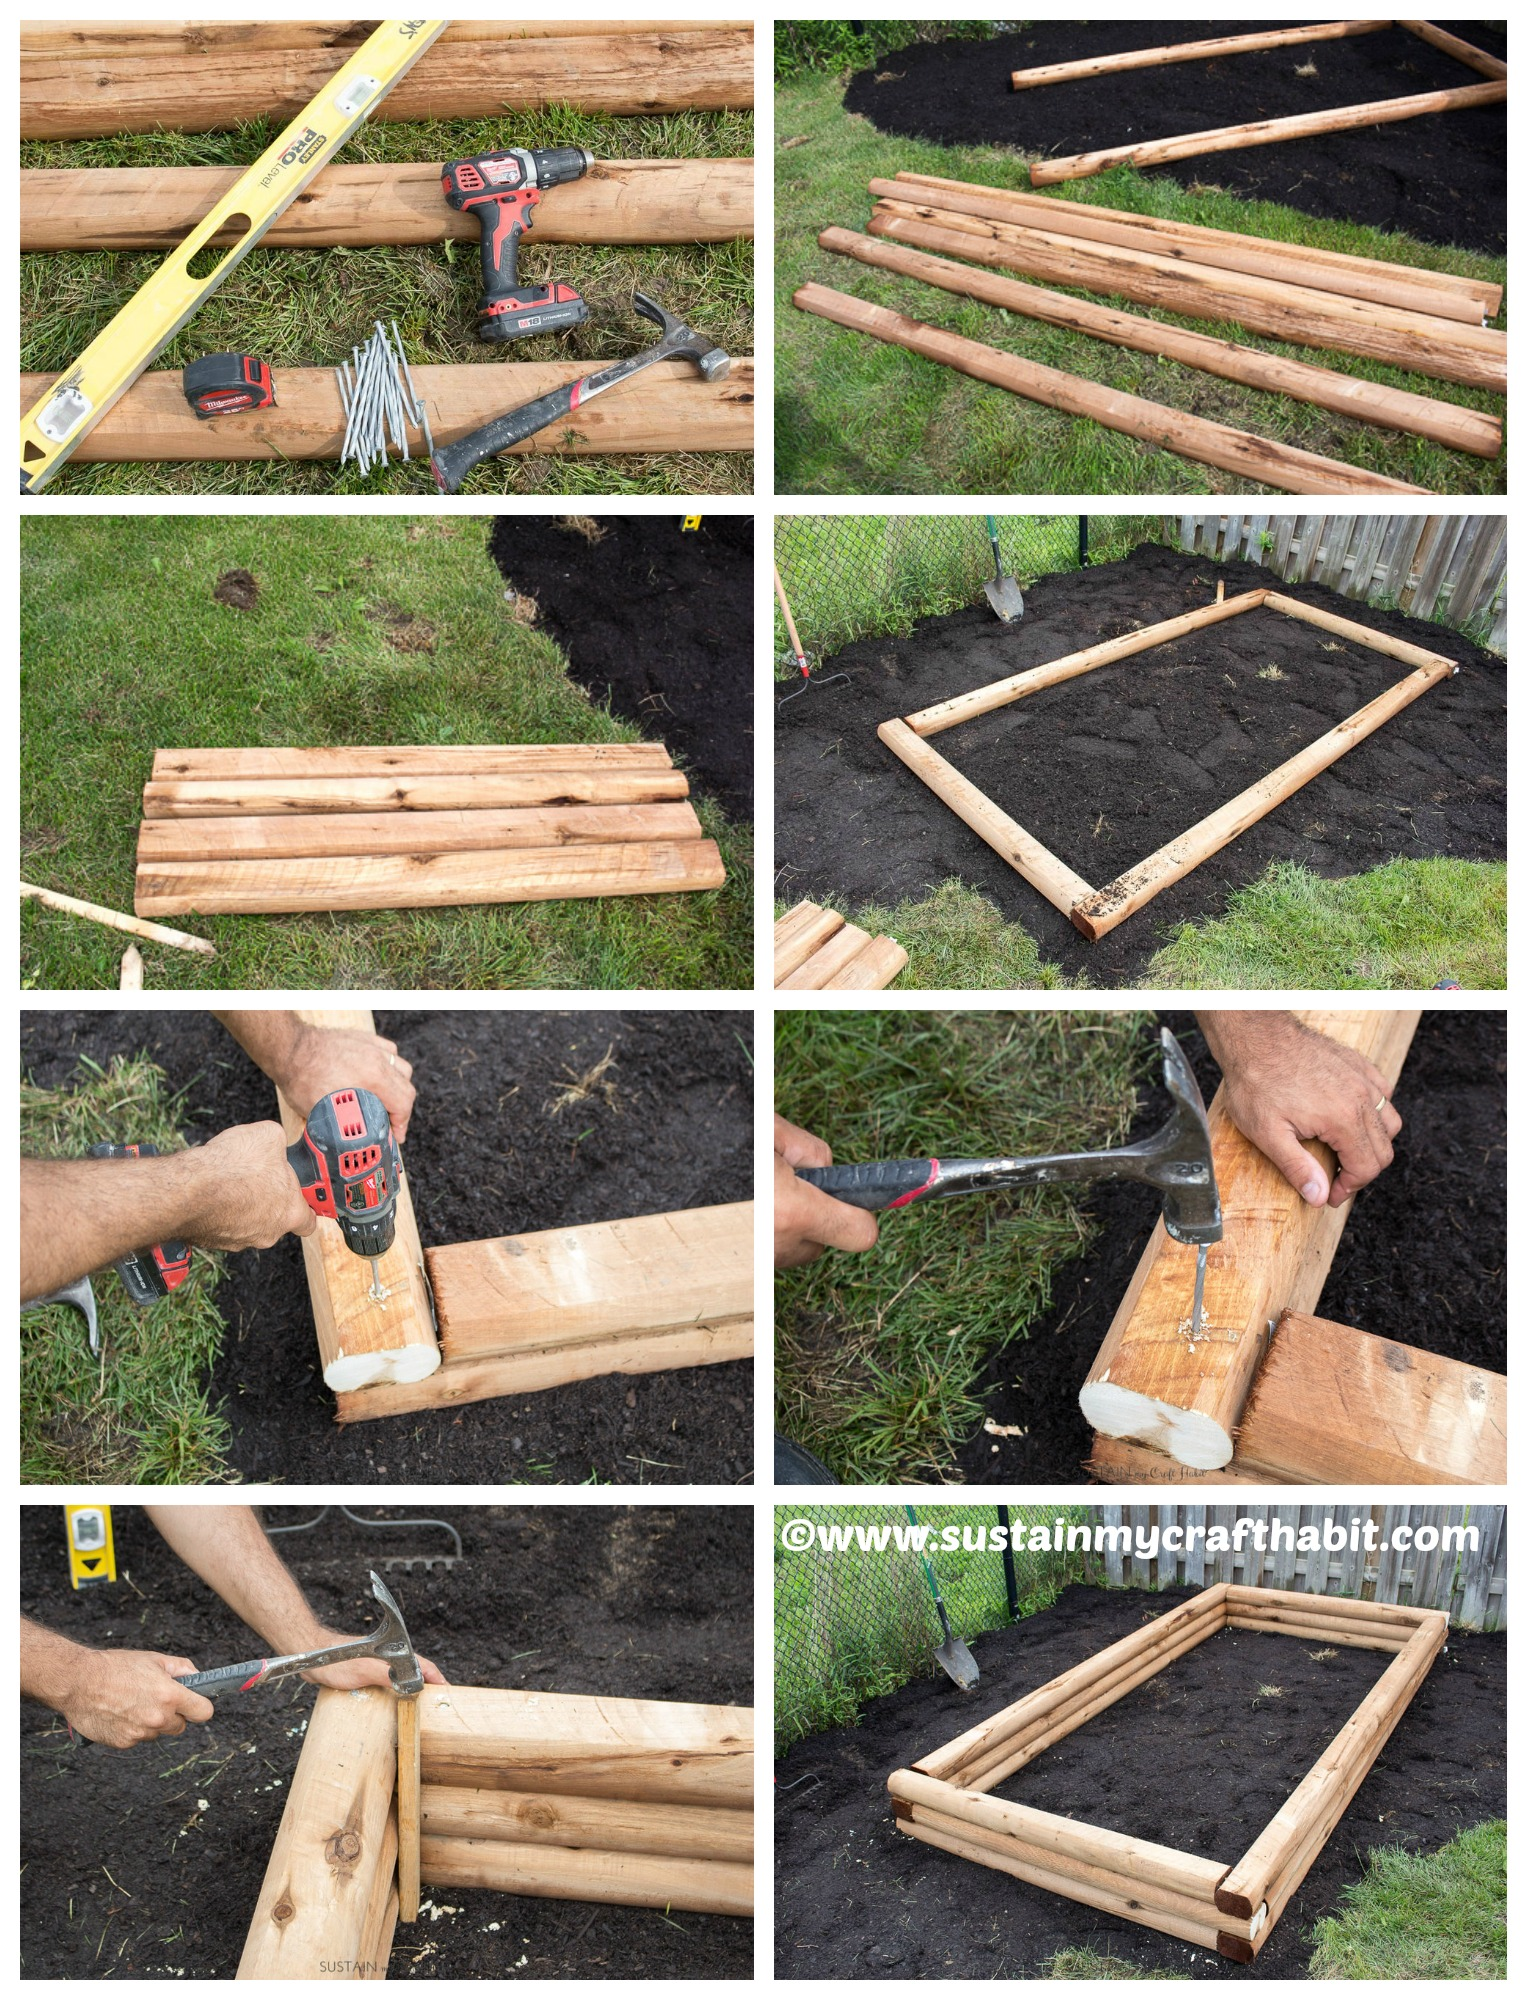 Instructions For Making Raised Garden Beds Diy Raised Garden Bed Tutorial Diy Home Tutorials